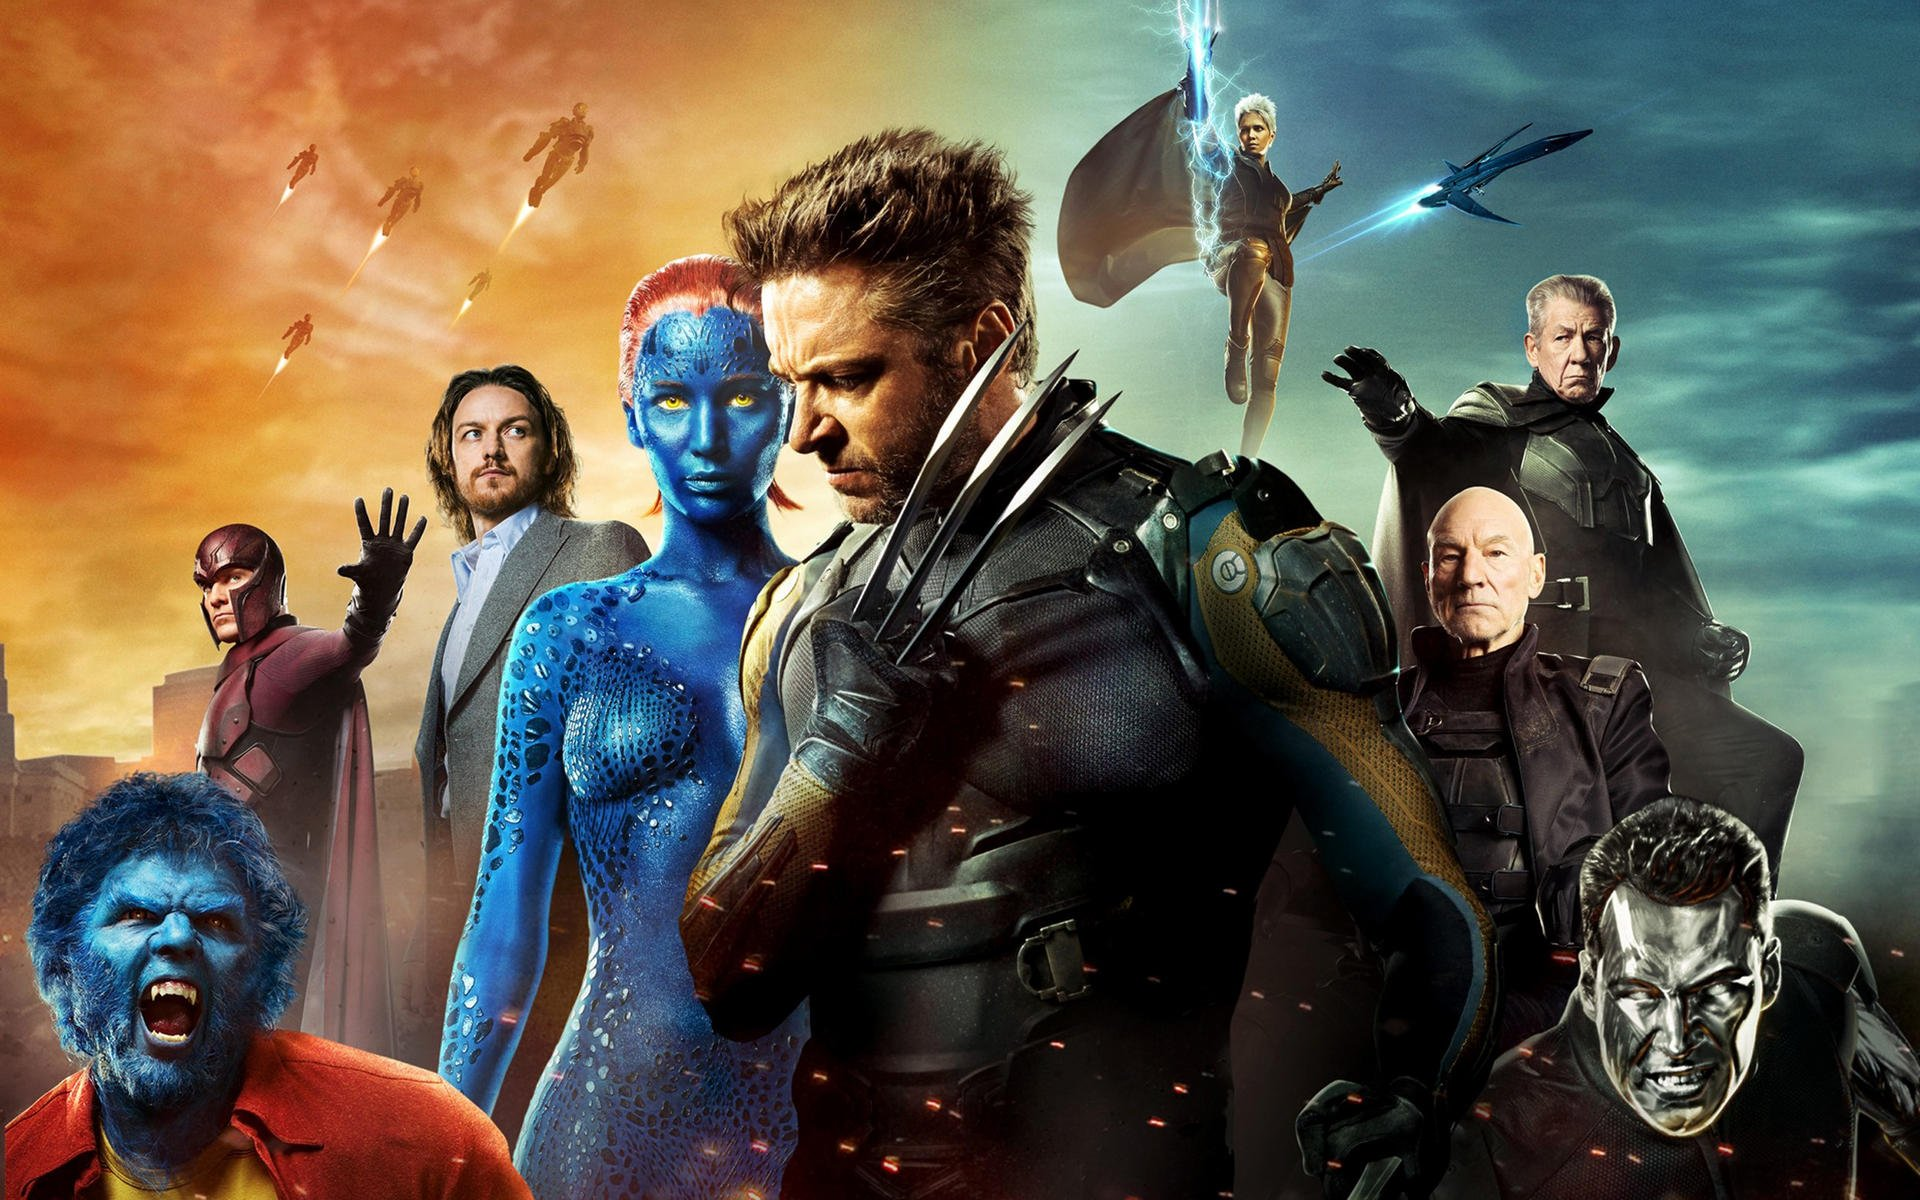 Hong Kong visual effects firm behind X-Men nominated for an Oscar ...